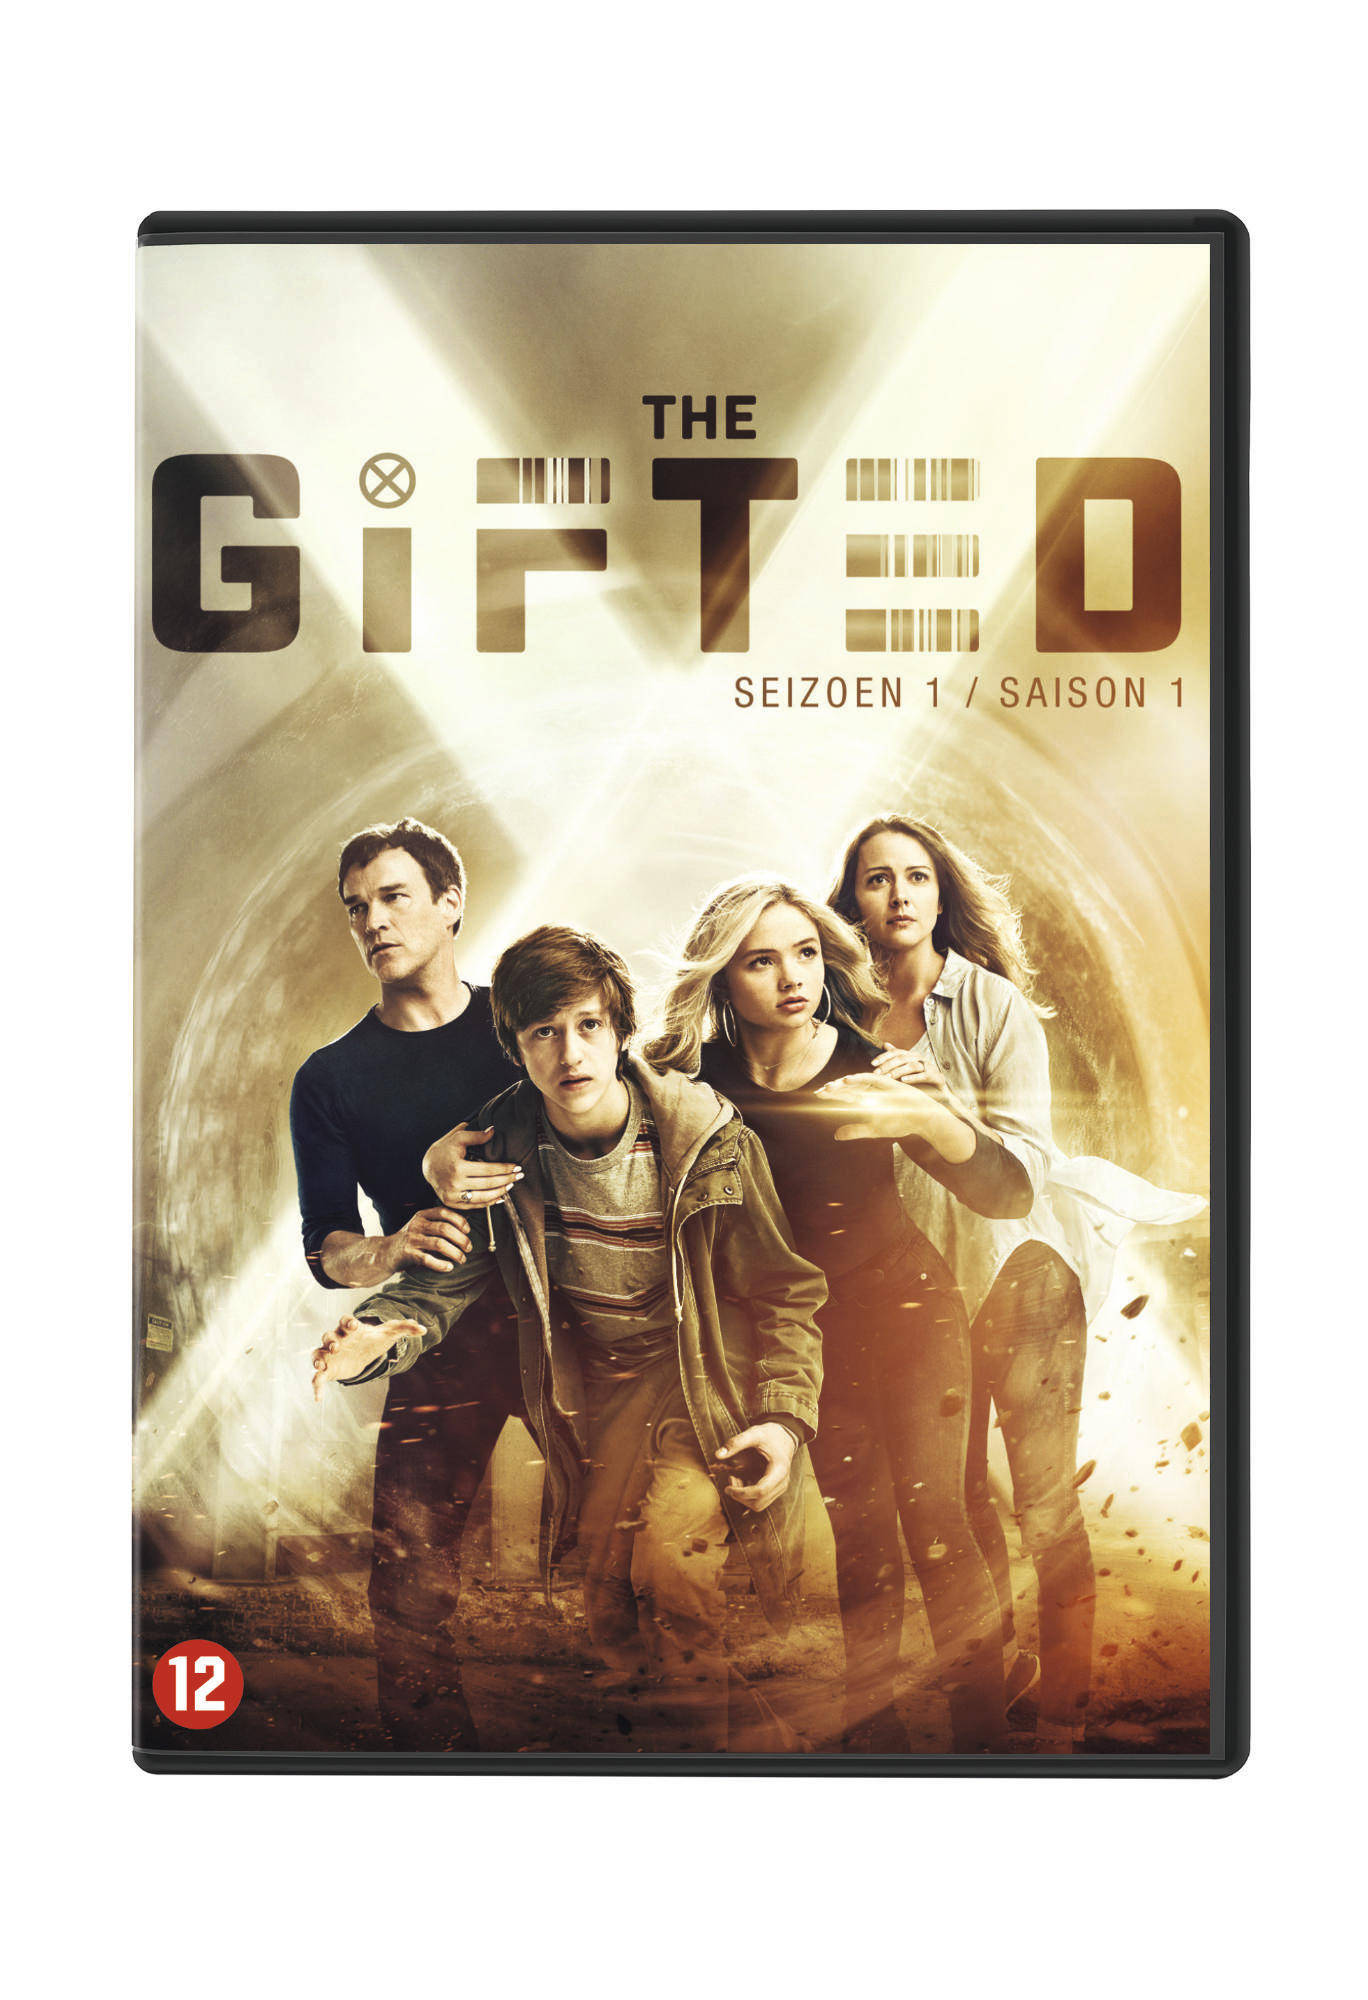 Review: The Gifted Season 1 (DvD)